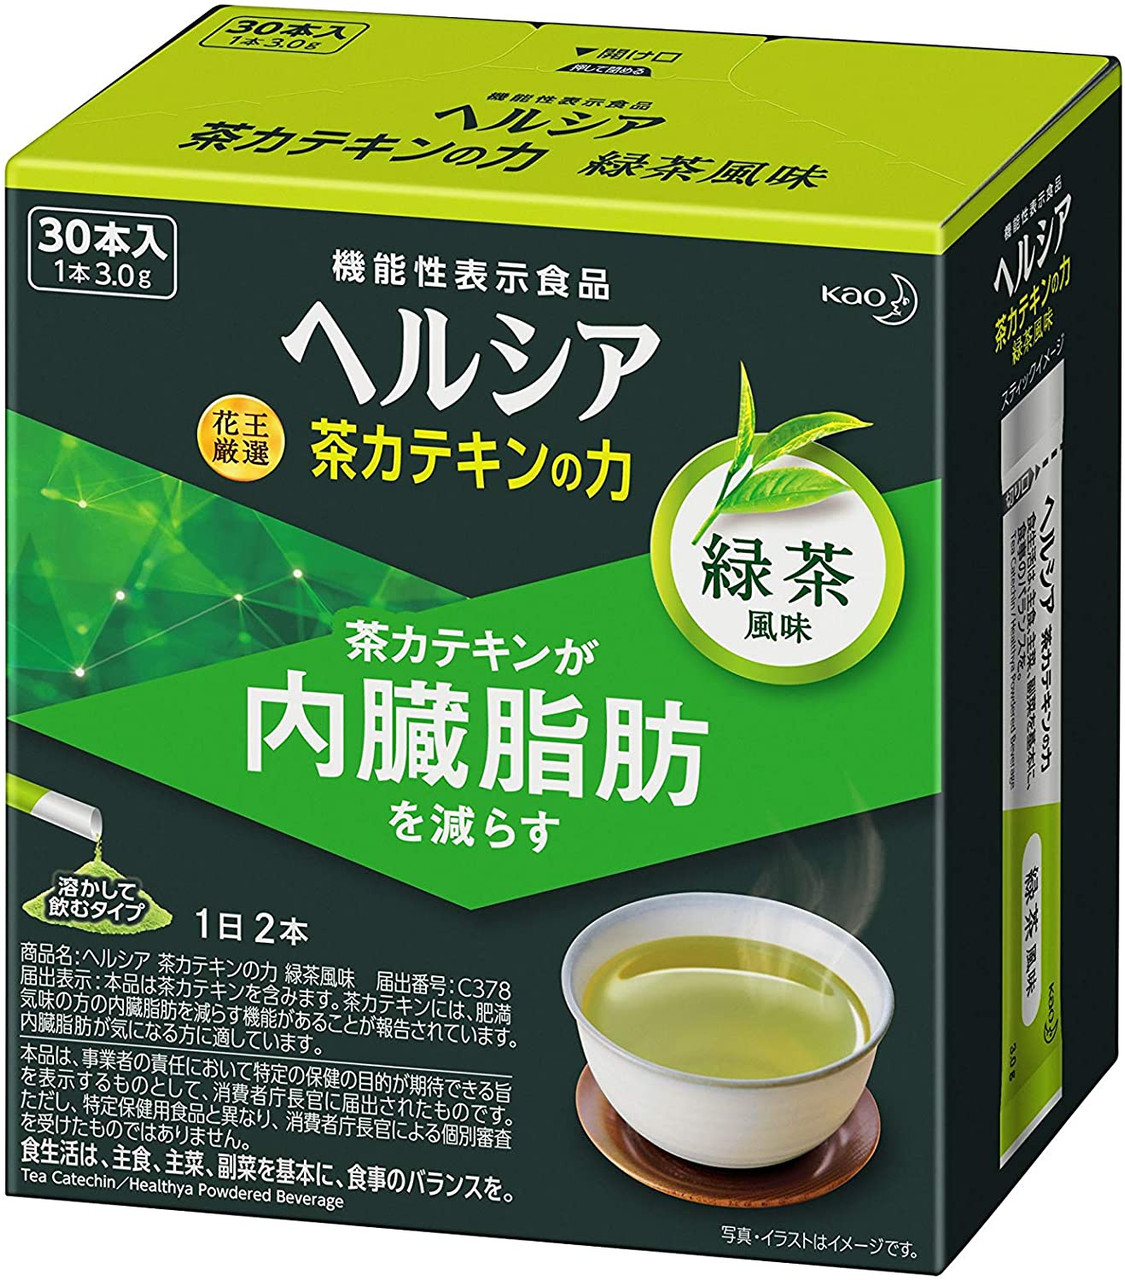 Healthya Green Tea with Catechins Extracted Beverage